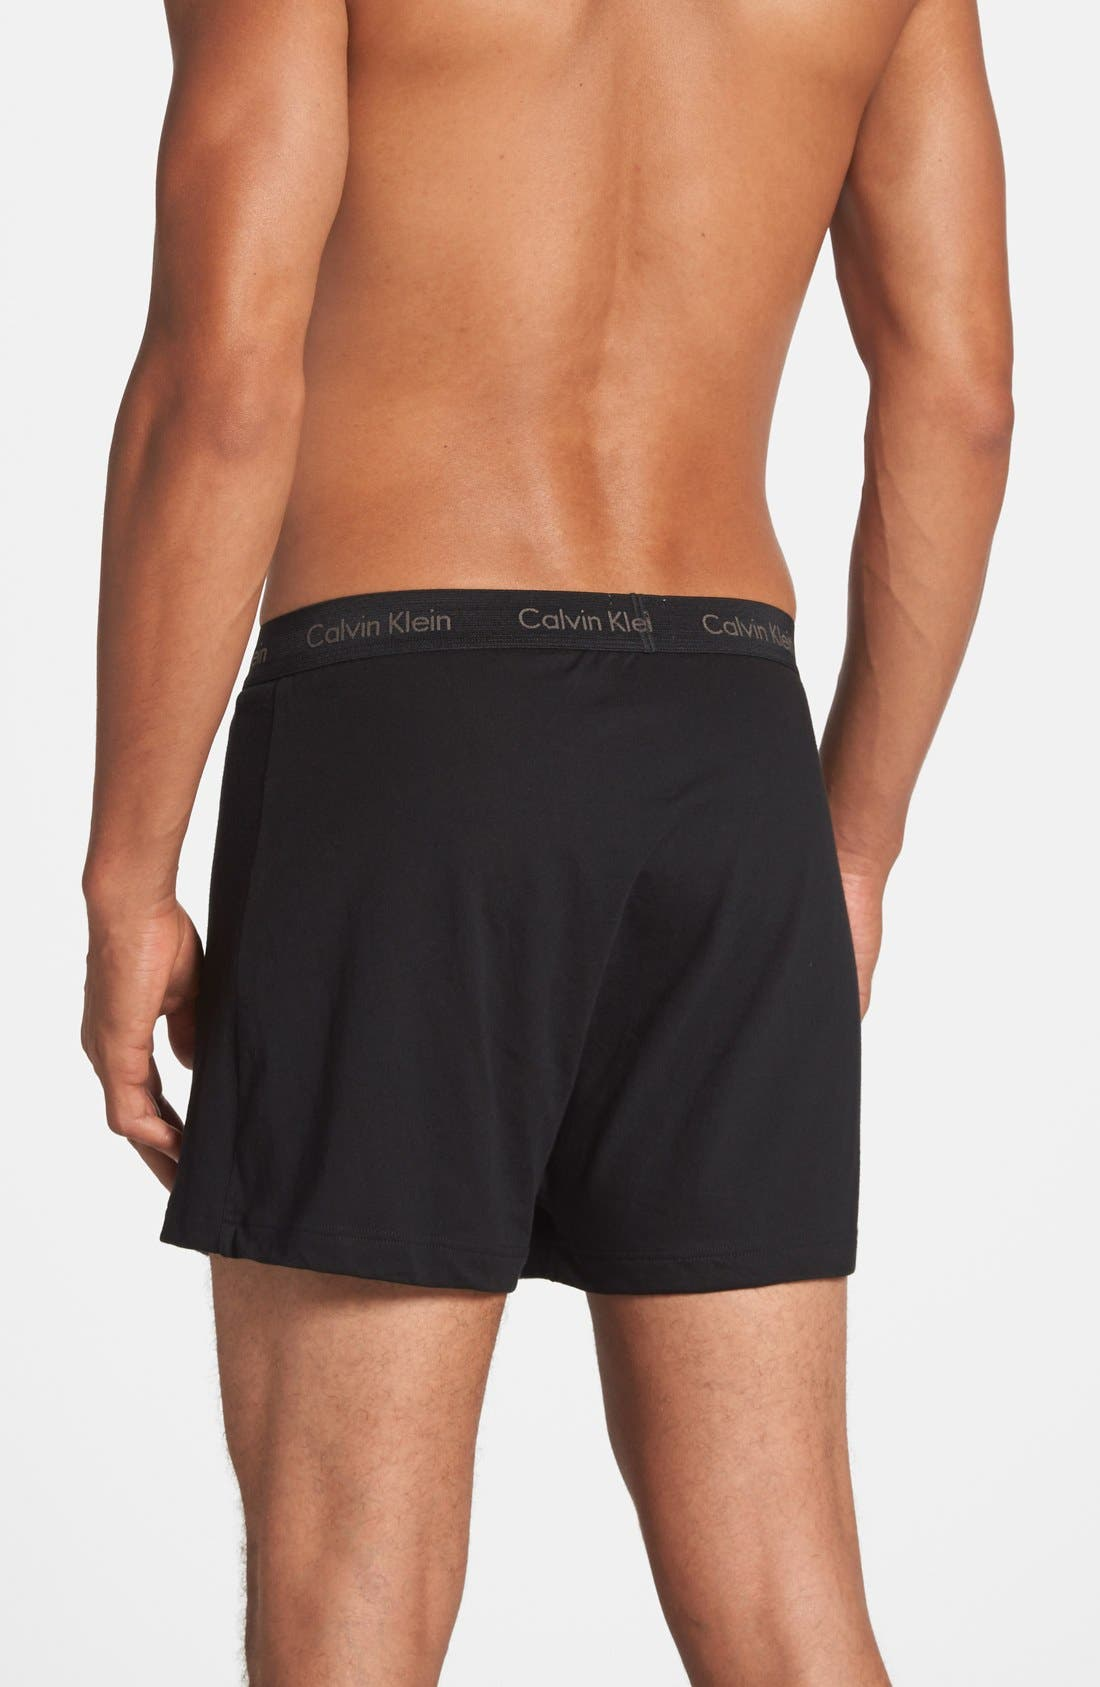 CALVIN KLEIN, 3-Pack Cotton Boxers, Alternate thumbnail 4, color, BLACK/ GREY/ WHITE